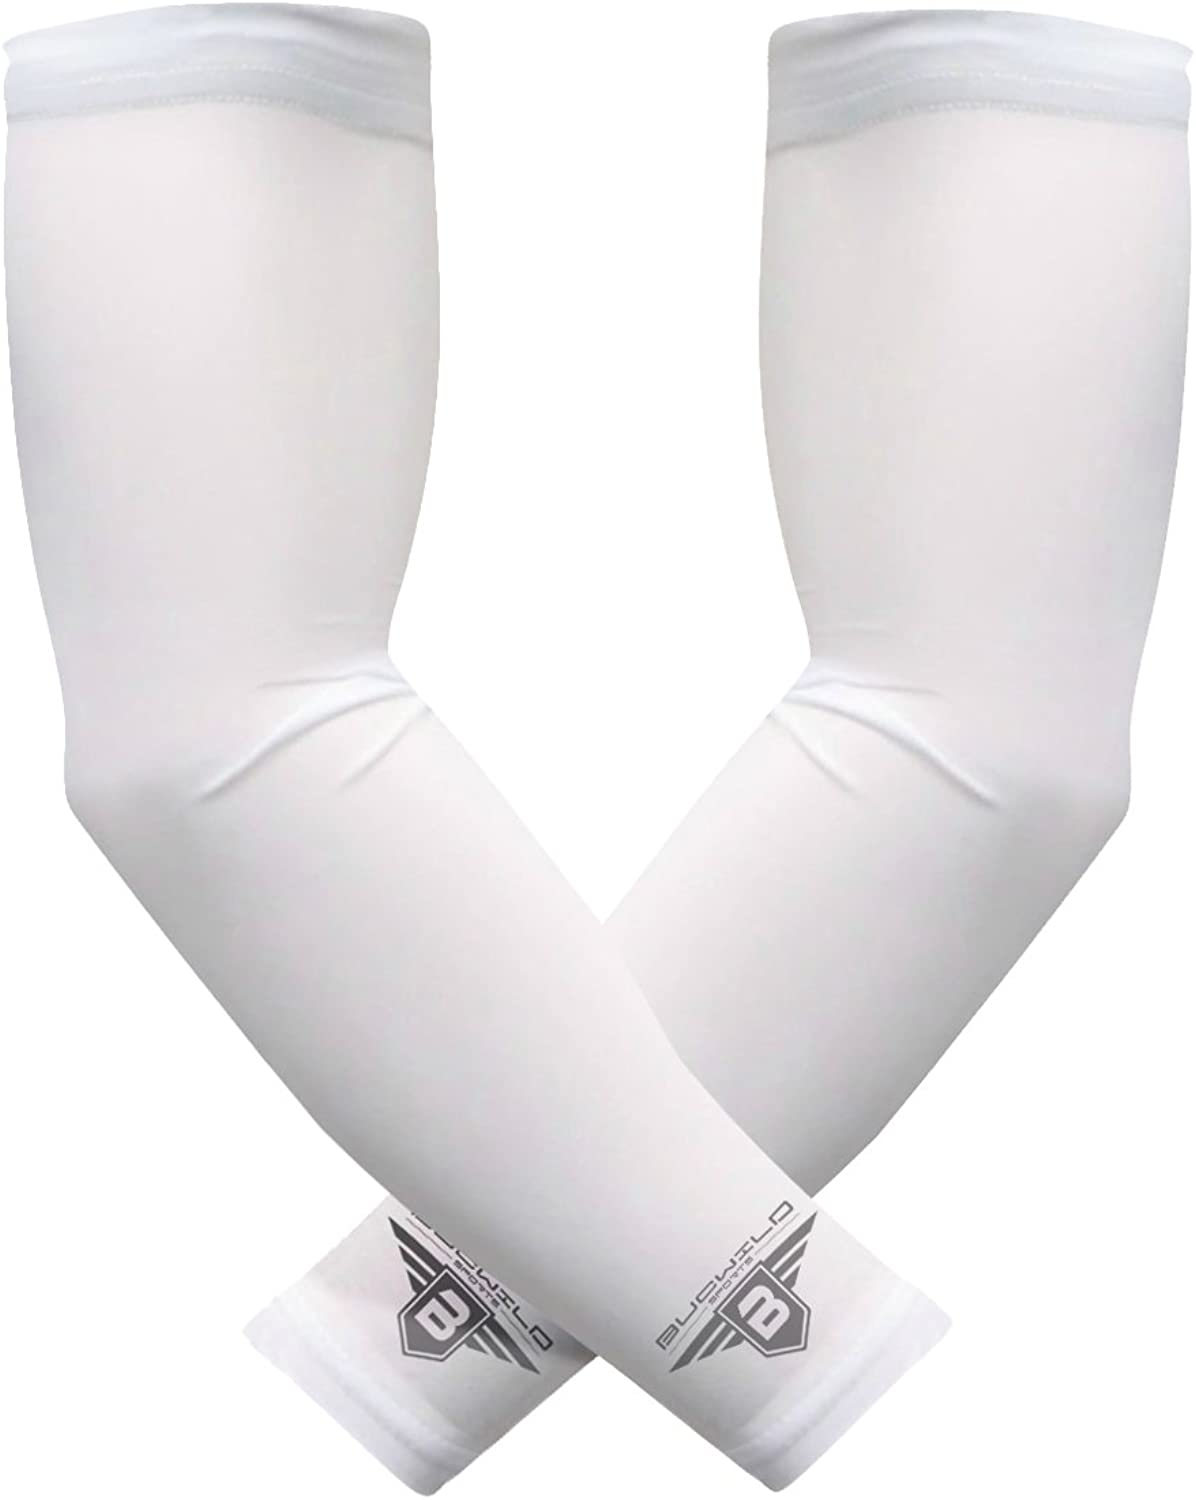 Bucwild Sports Compression Arm Sleeves 1 Pair  2 Sleeves Youth & Adult Sizes Football Baseball Basketball Cycling Tennis